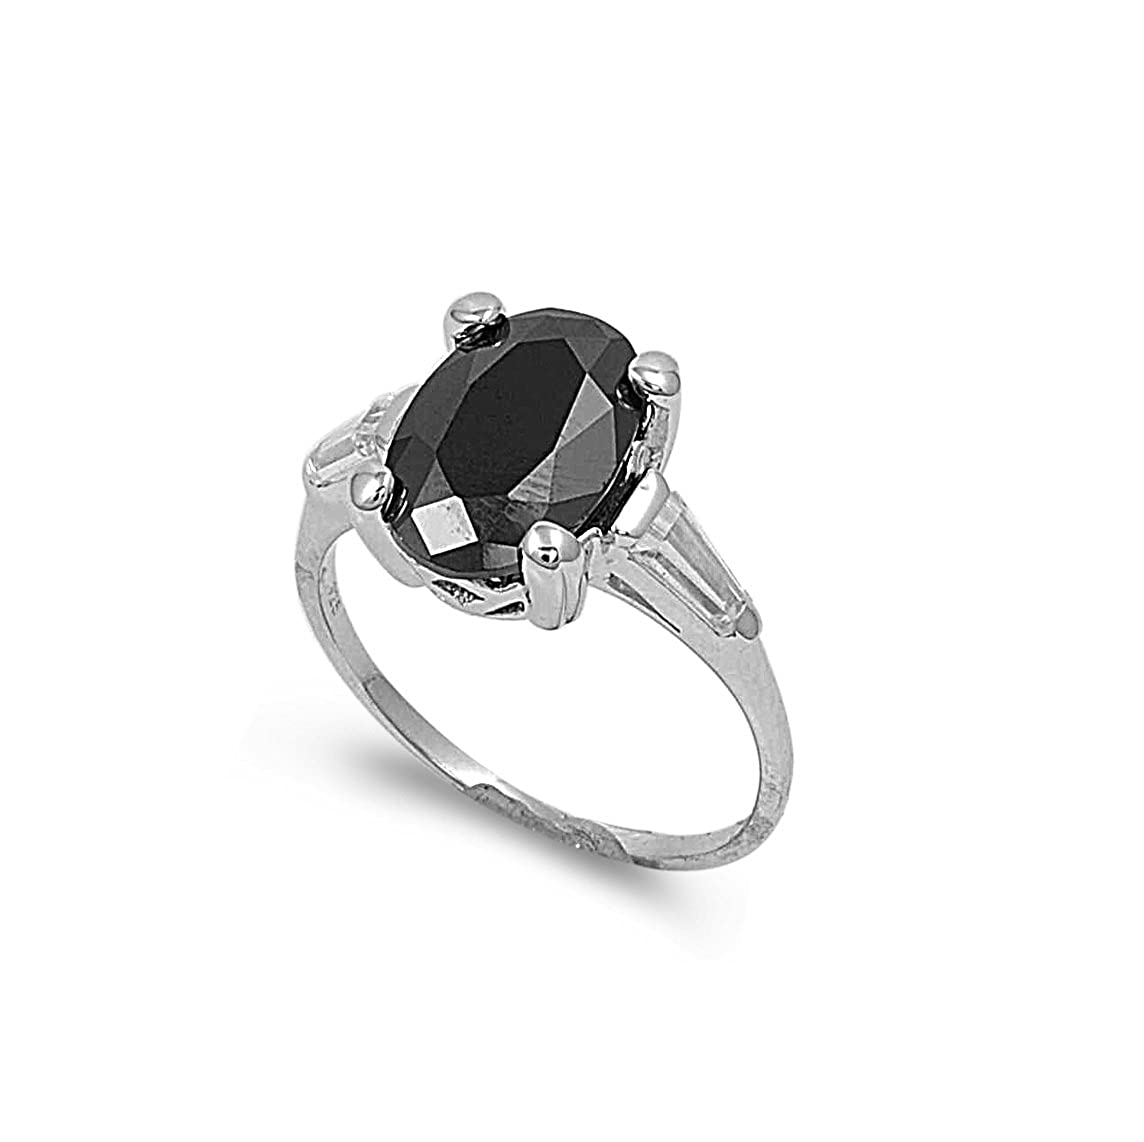 CloseoutWarehouse Oval Black Cubic Zirconia Center with Baguette Sides Ring Sterling Silver